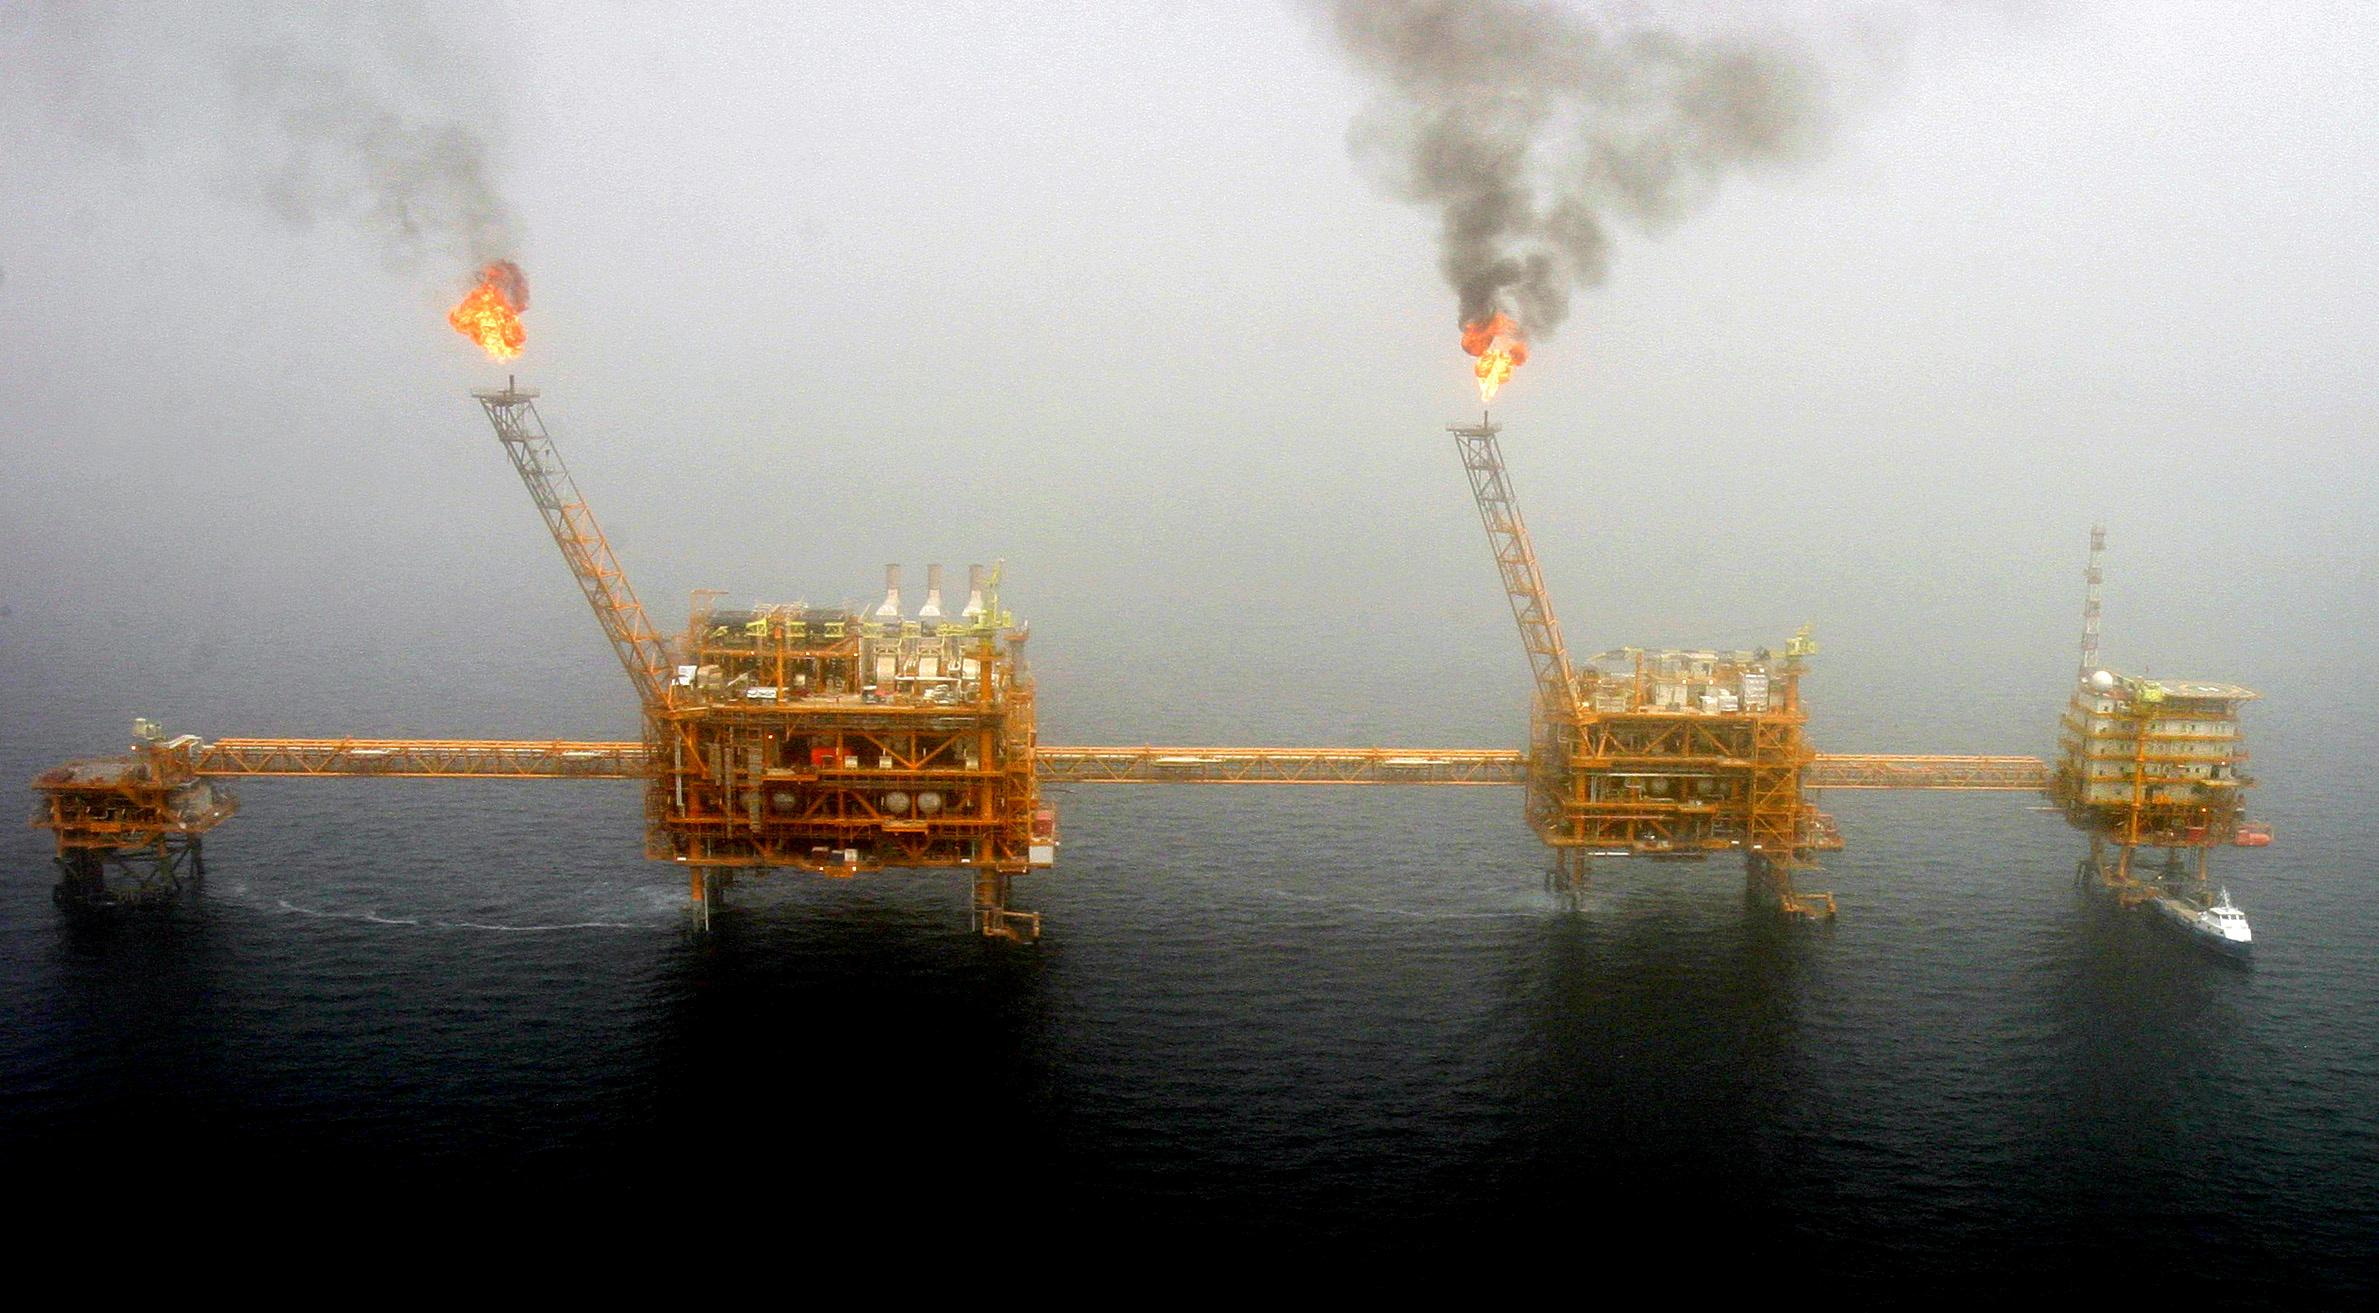 Iran says it will adopt maximum crude output policy if U.S. lifts sanctions